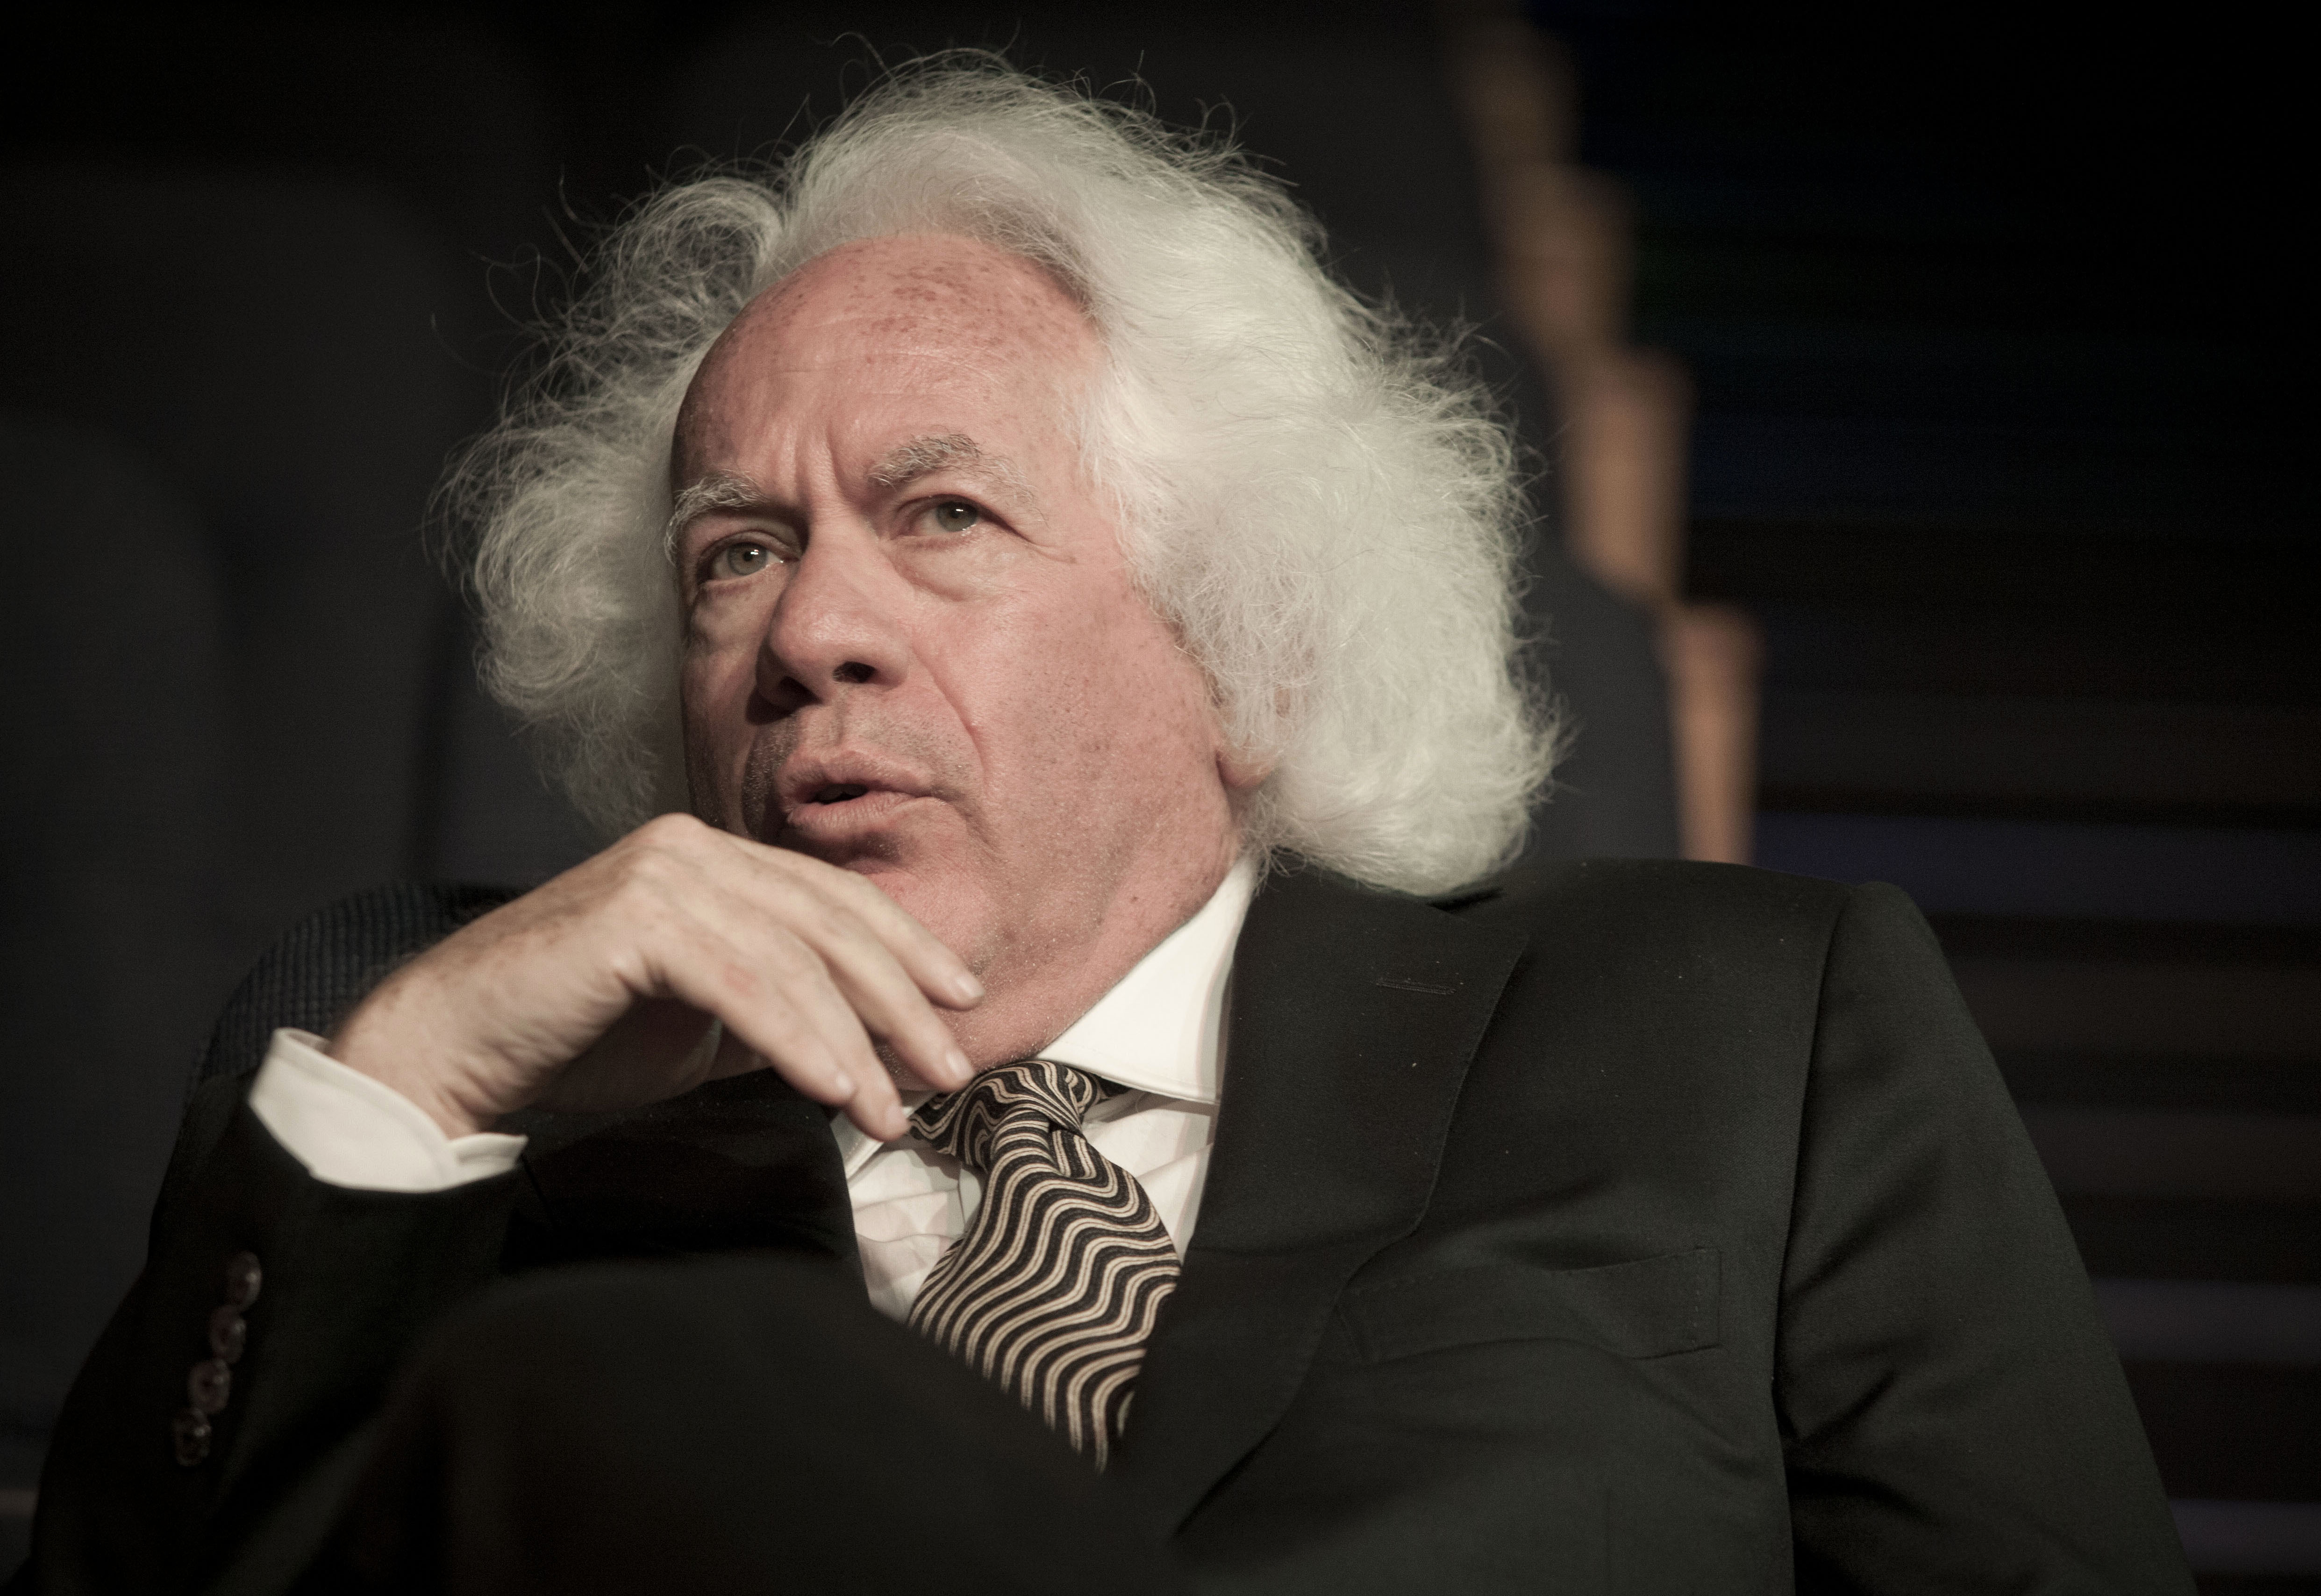 FILE - In this June 9, 2013 file photo, literary editor Leon Wieseltier poses for a photograph in Tel Aviv, Israel.  (AP Photo/Dan Balilty, File)